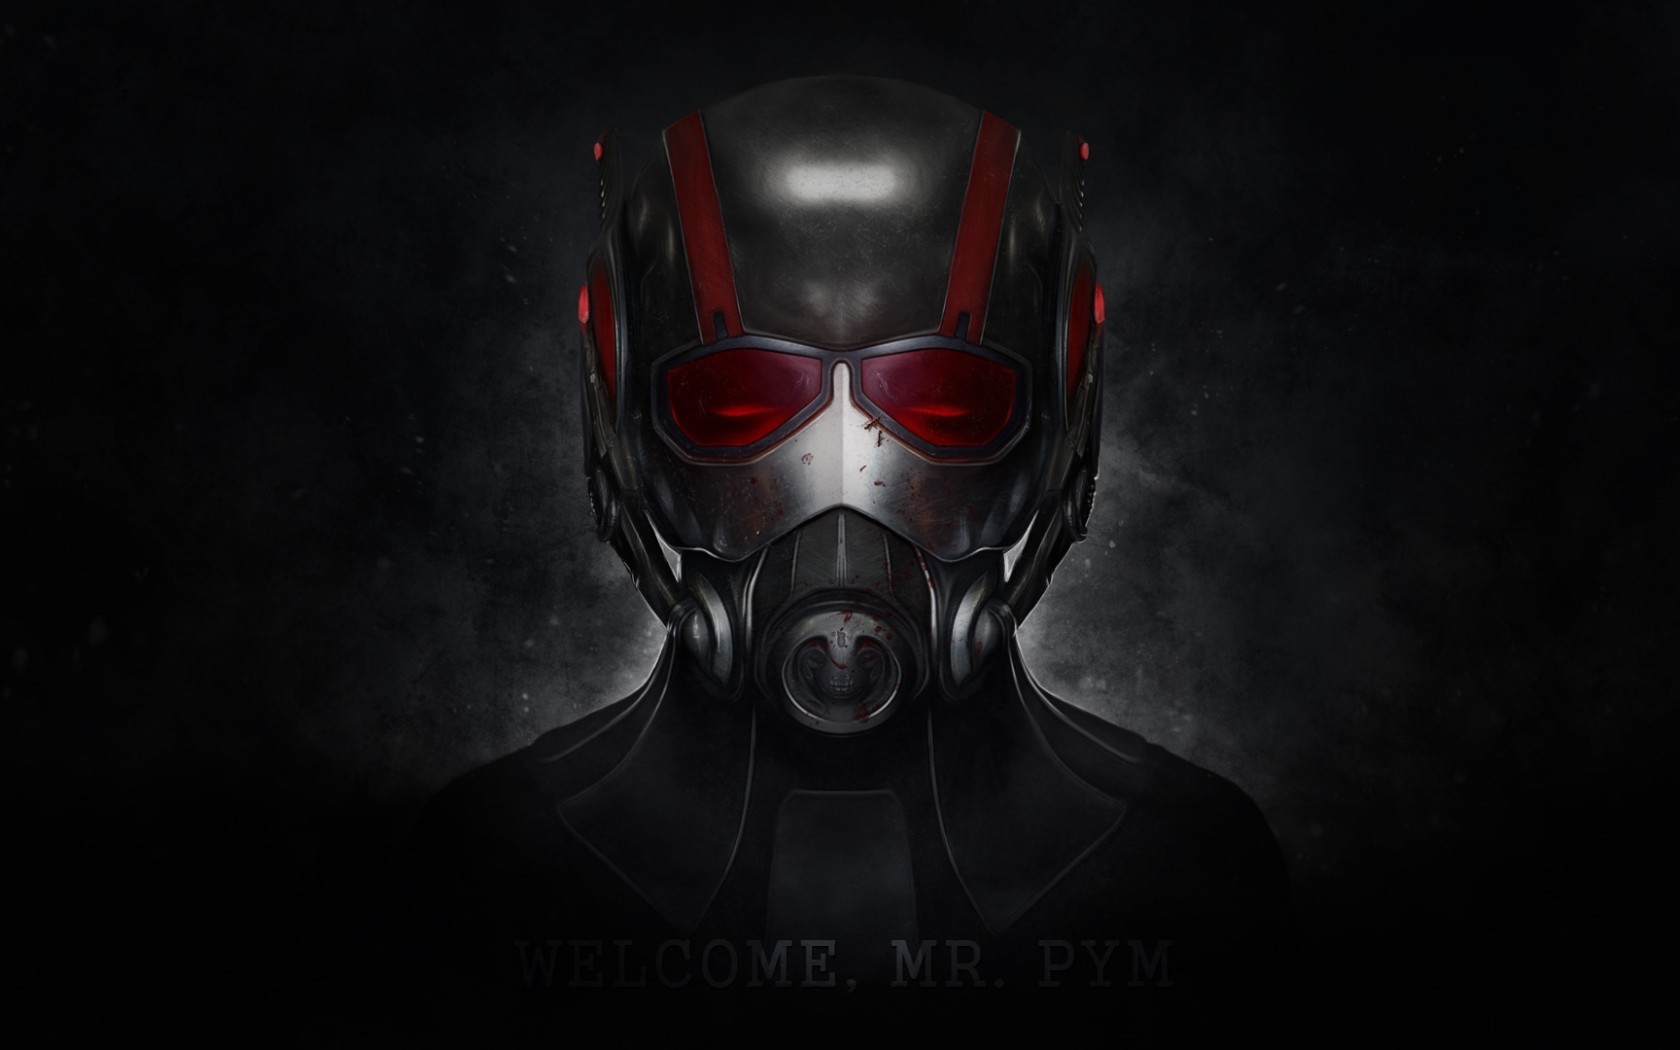 Ant Man Wallpaper 1680x1050 1680x1050